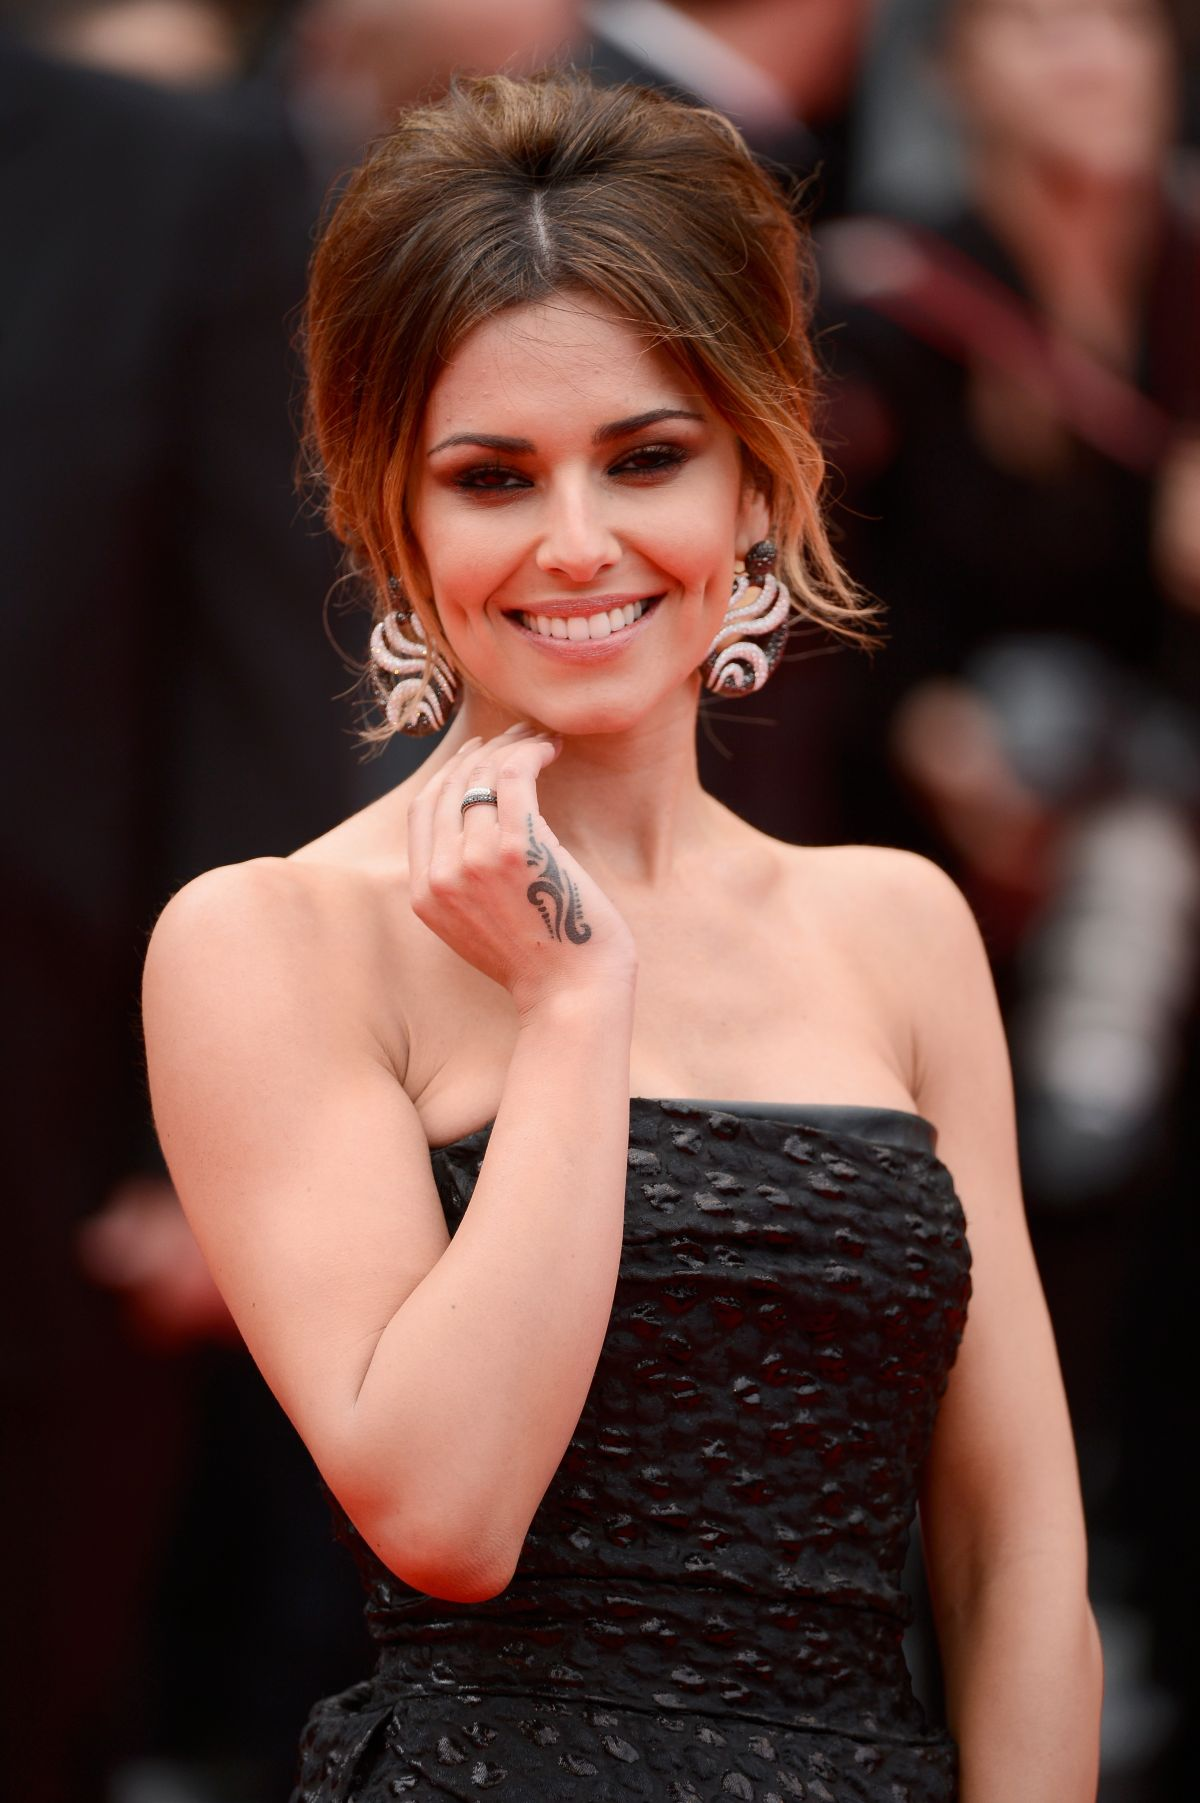 Cheryl Cole Wallpapers High Quality Download Free